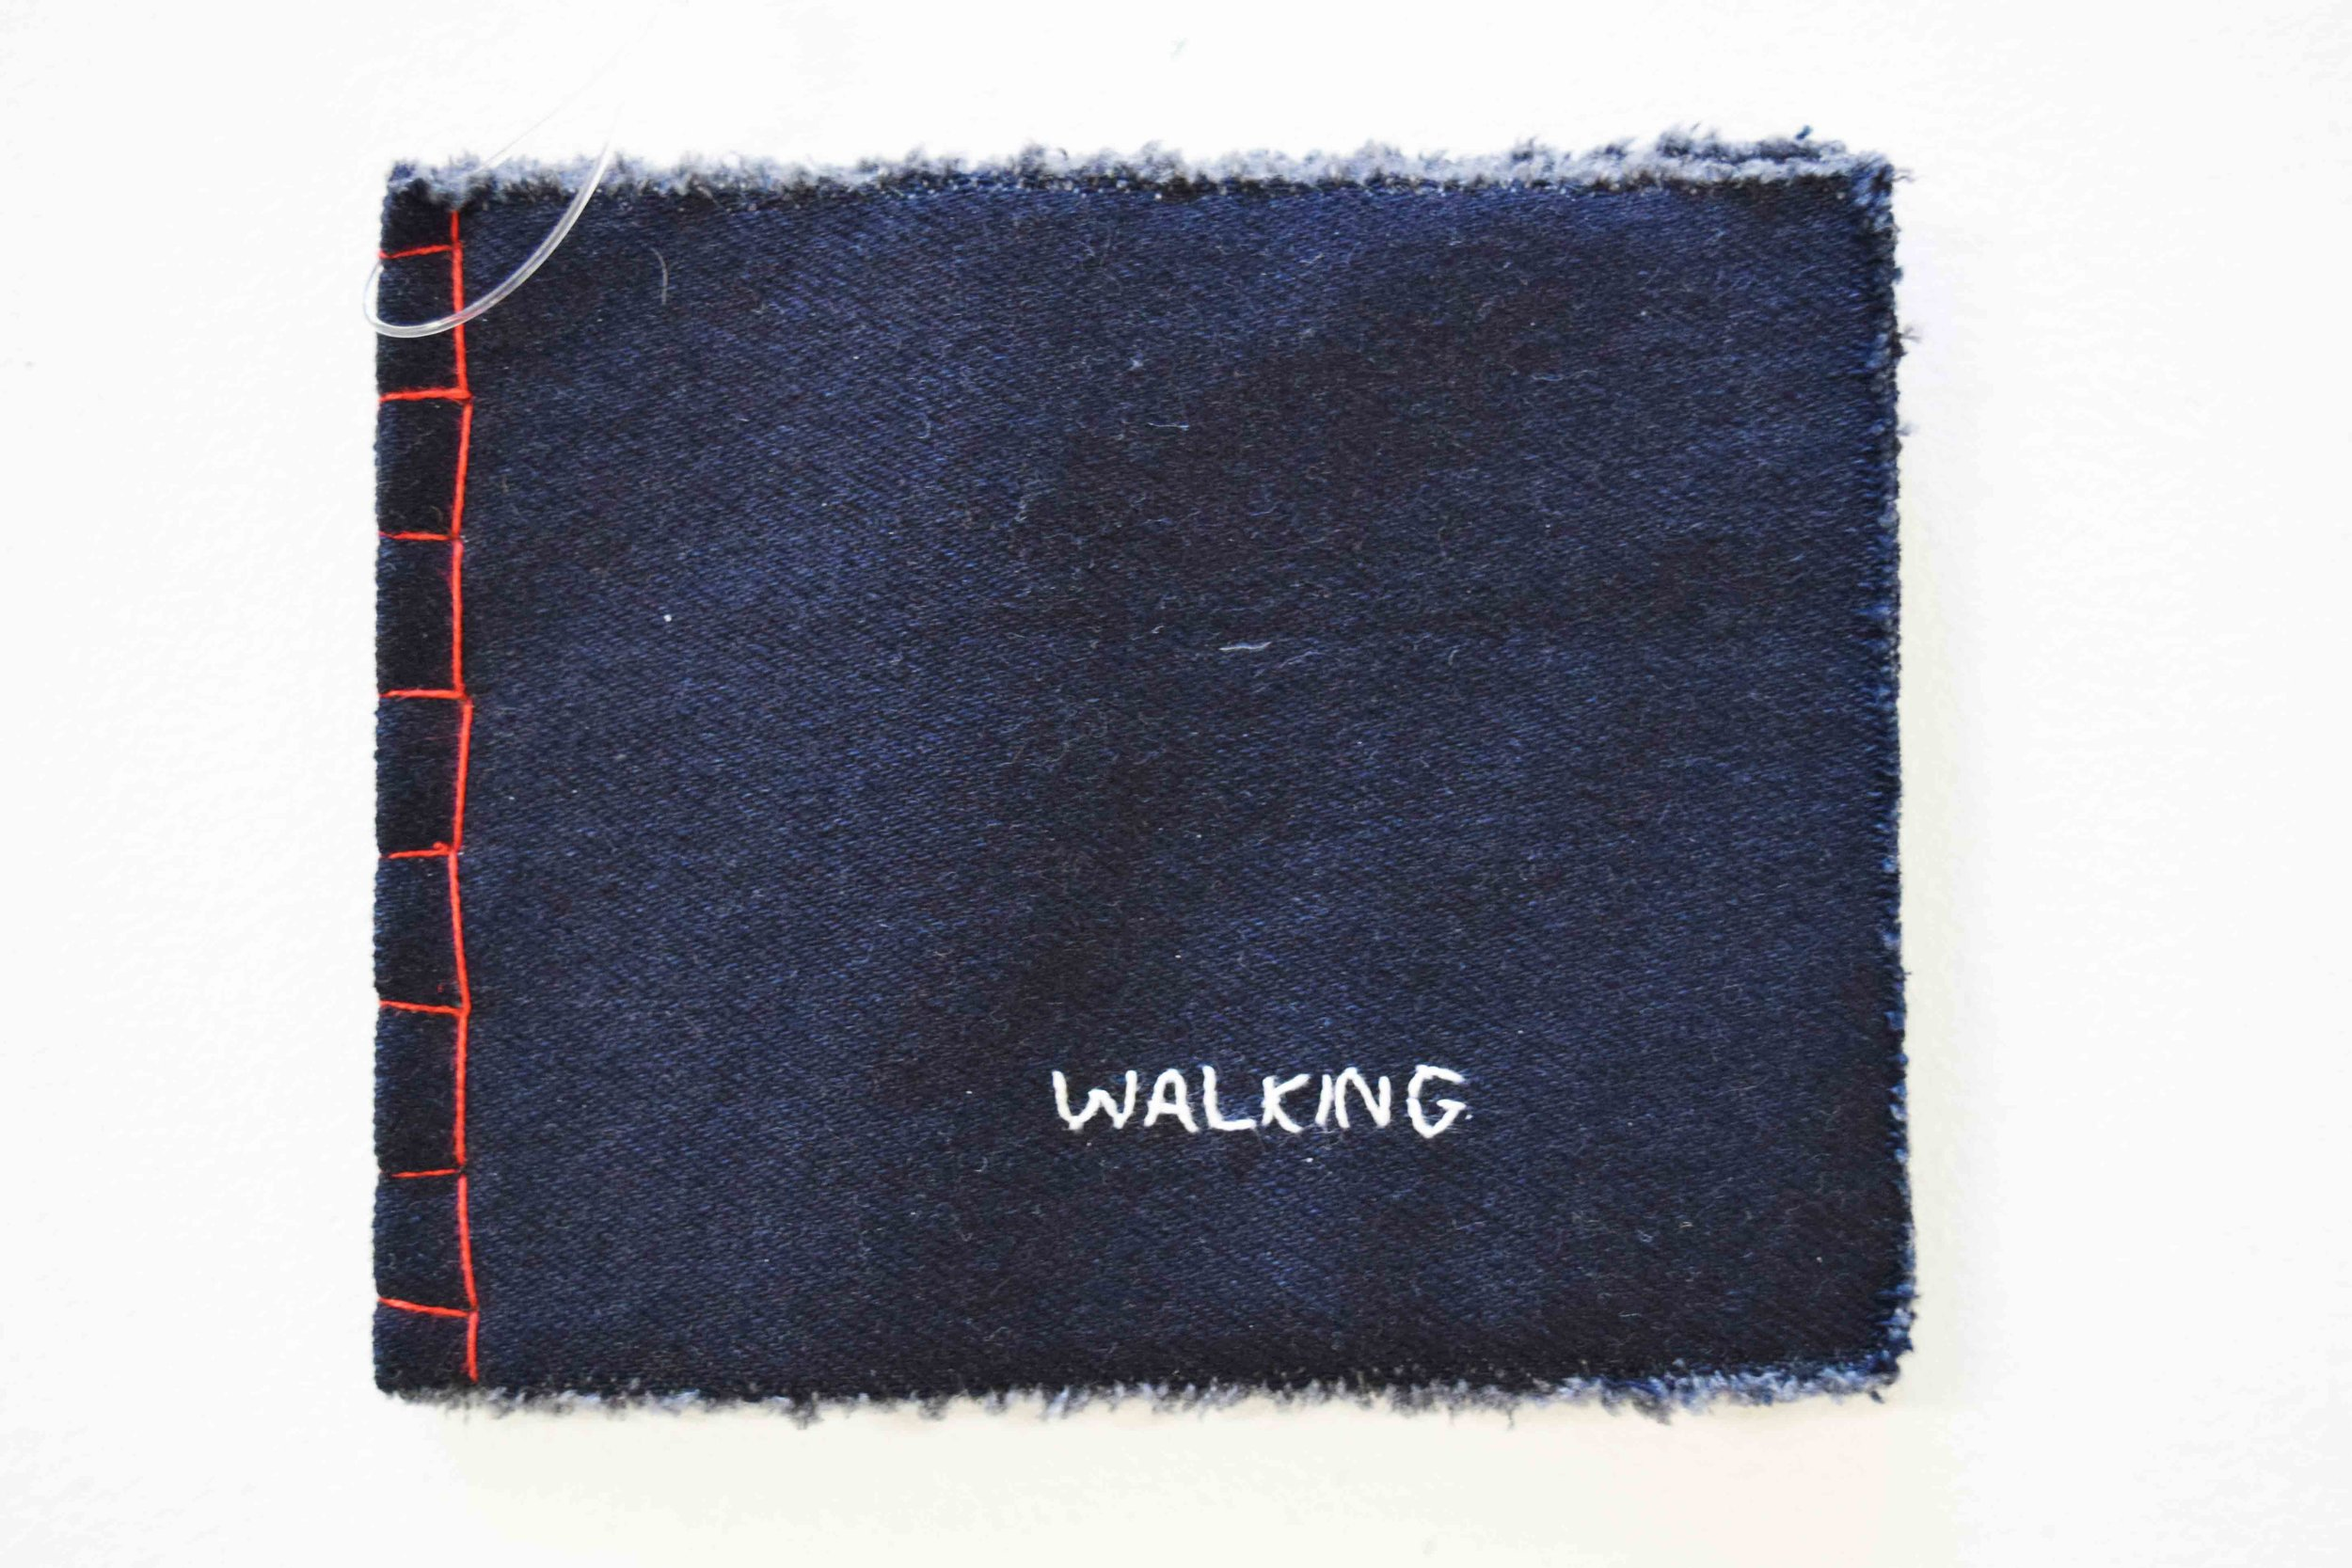 41. Anne Williams,  Walking,  hand stitched cotton and silk, book binding, 12 x 15 cm $110